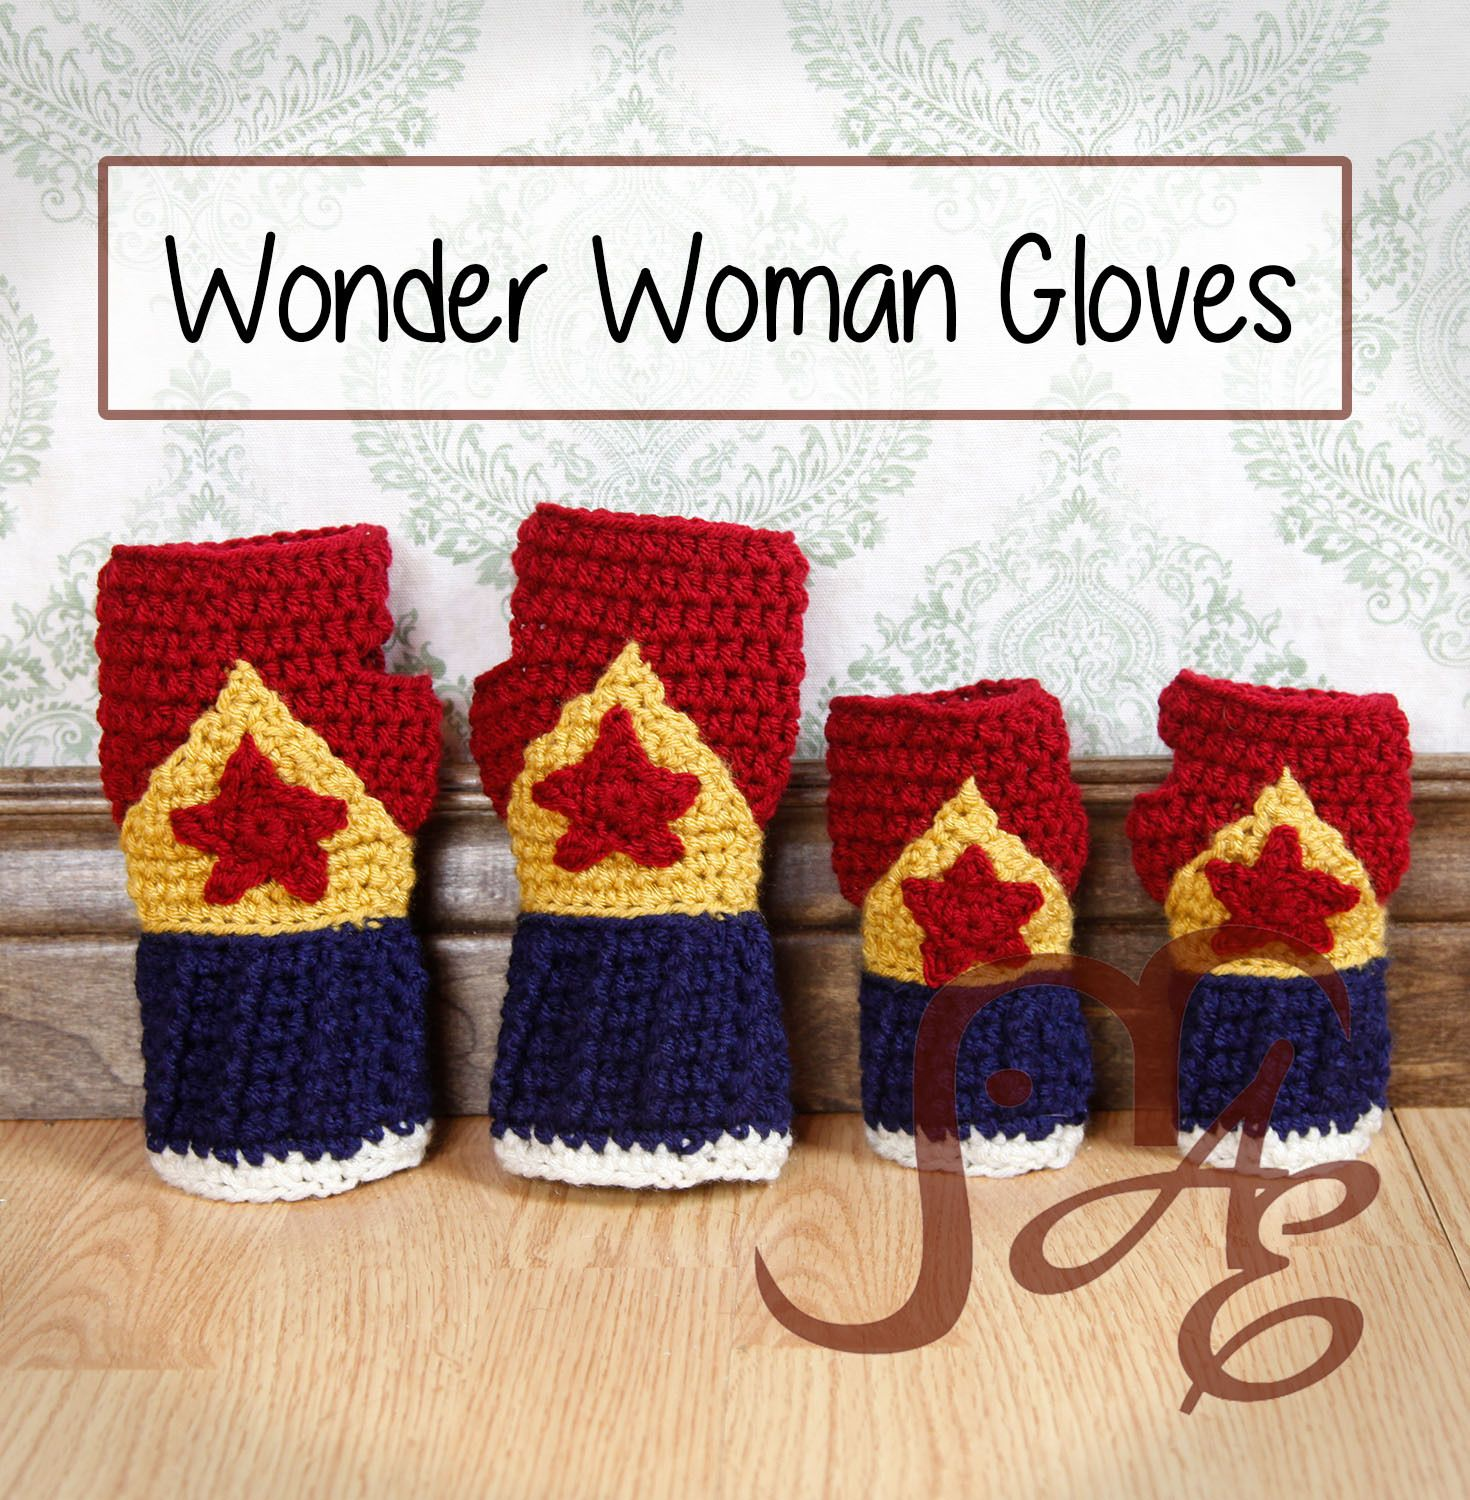 Free Crochet Pattern Wonder Woman Fingerless Gloves | Crochet 8 ...